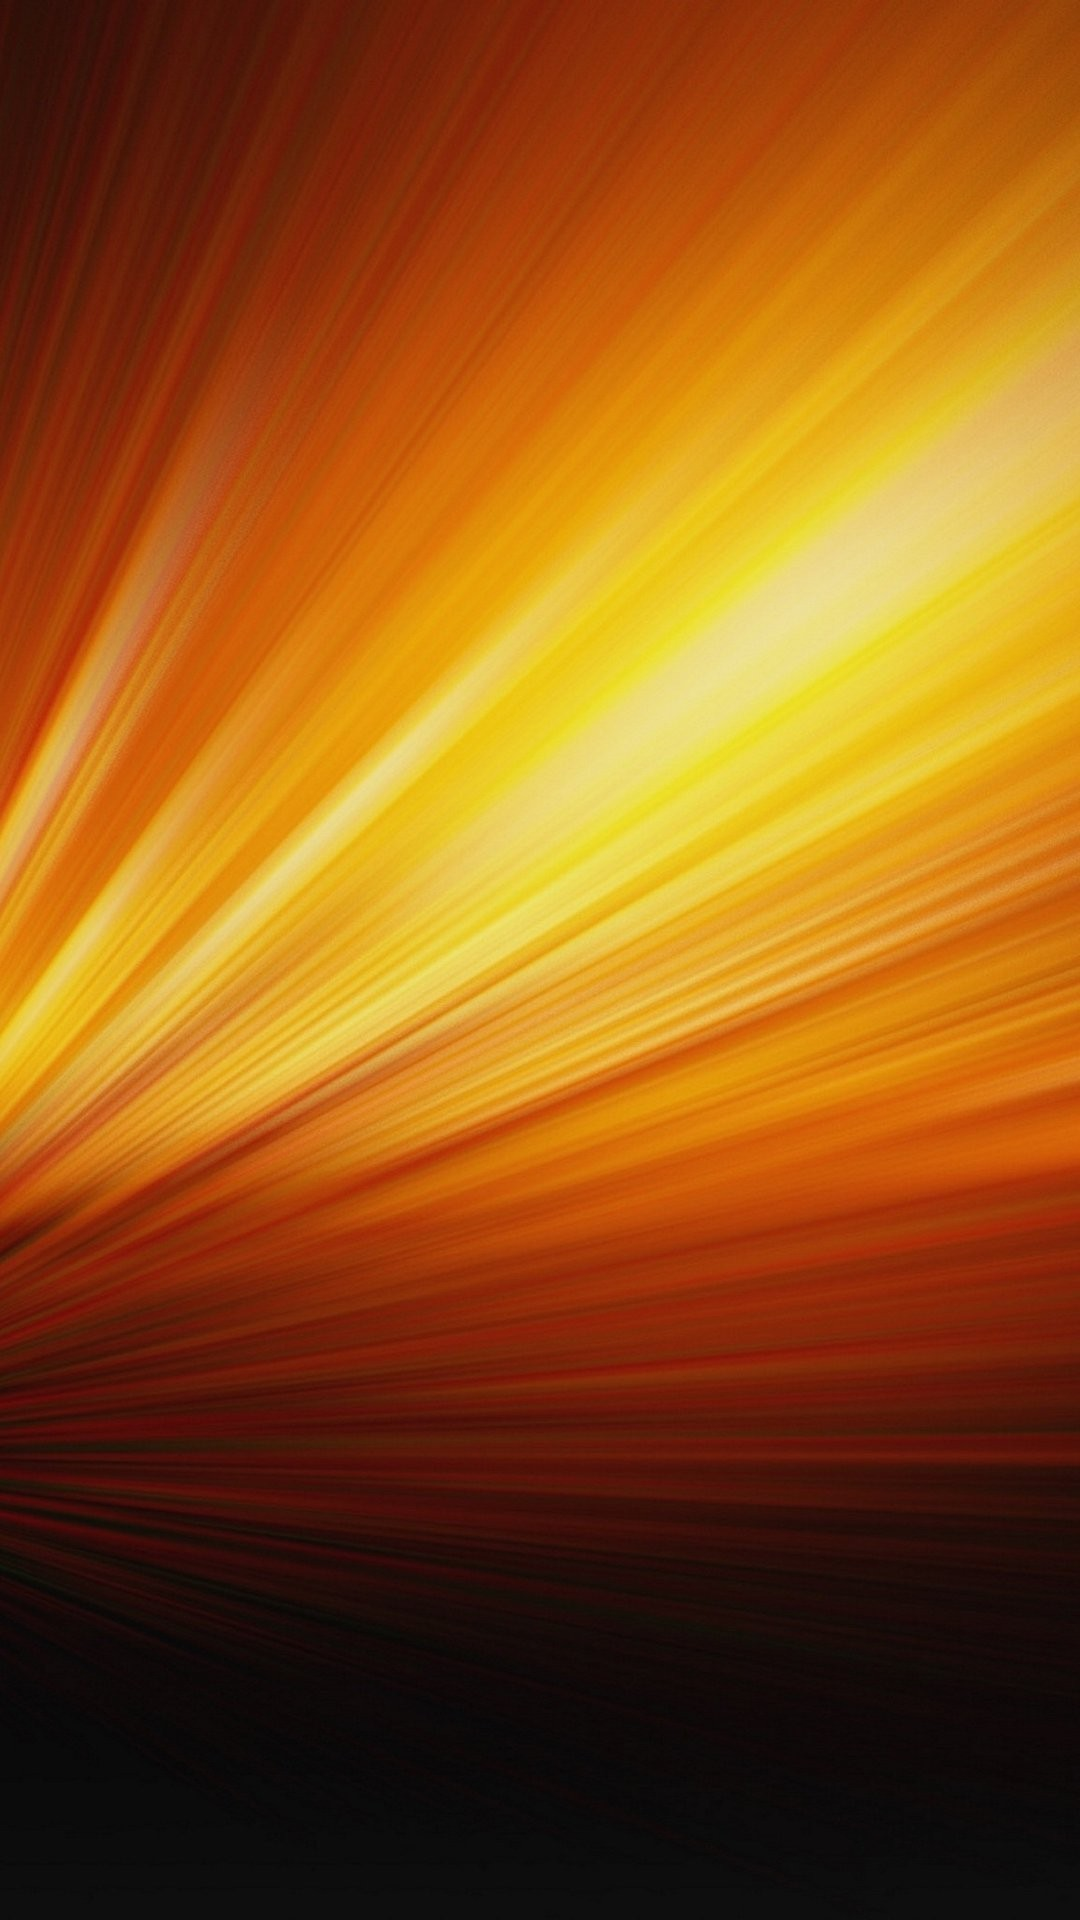 1080x1920 Orange Light HD iPhone 6 Plus Wallpaper 34823 - Abstract iPhone 6 Plus  Wallpapers